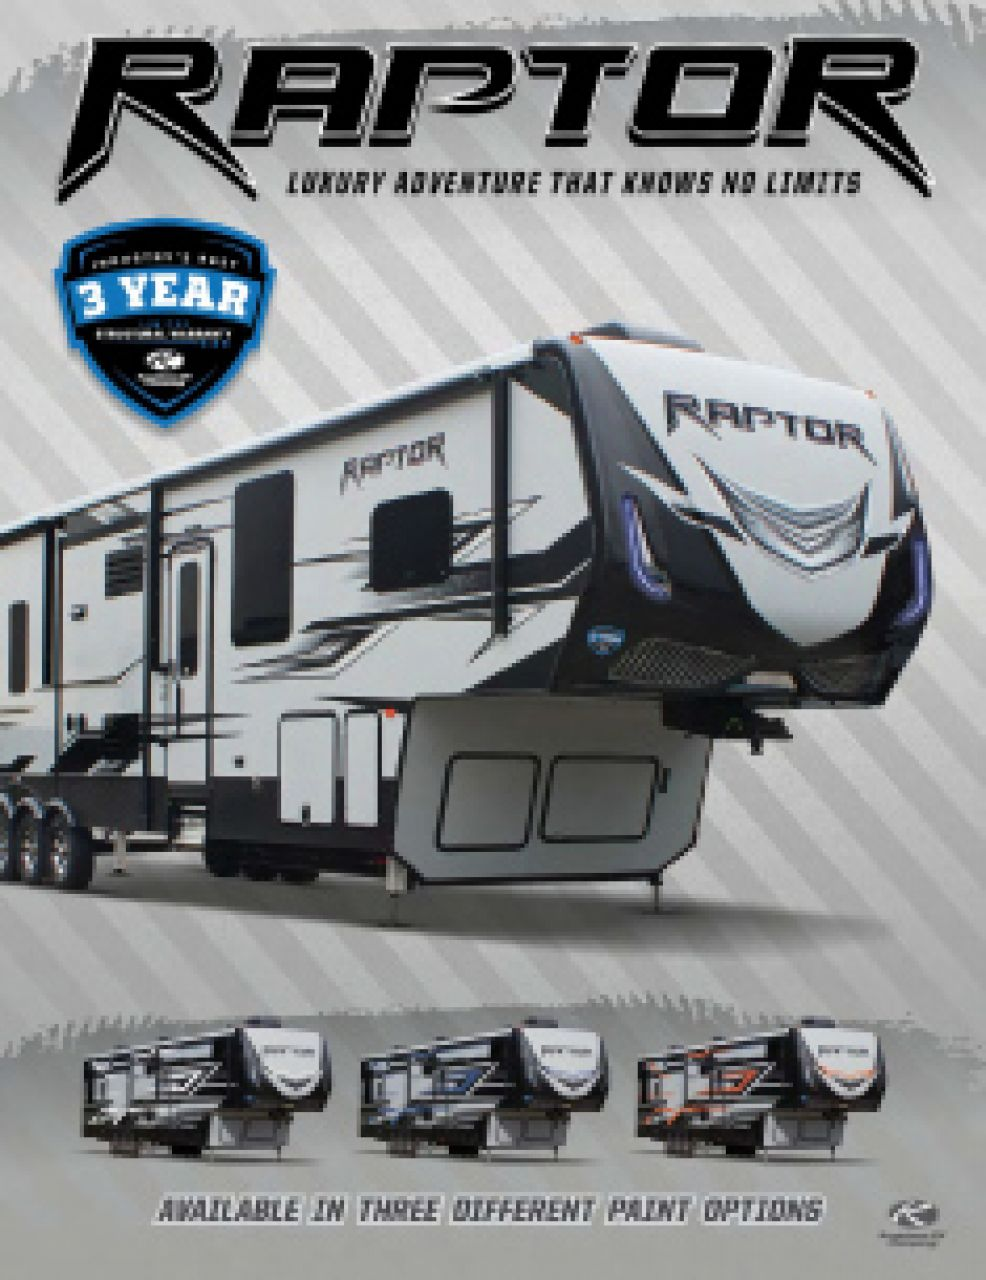 2019 Keystone Raptor RV Brochure Cover